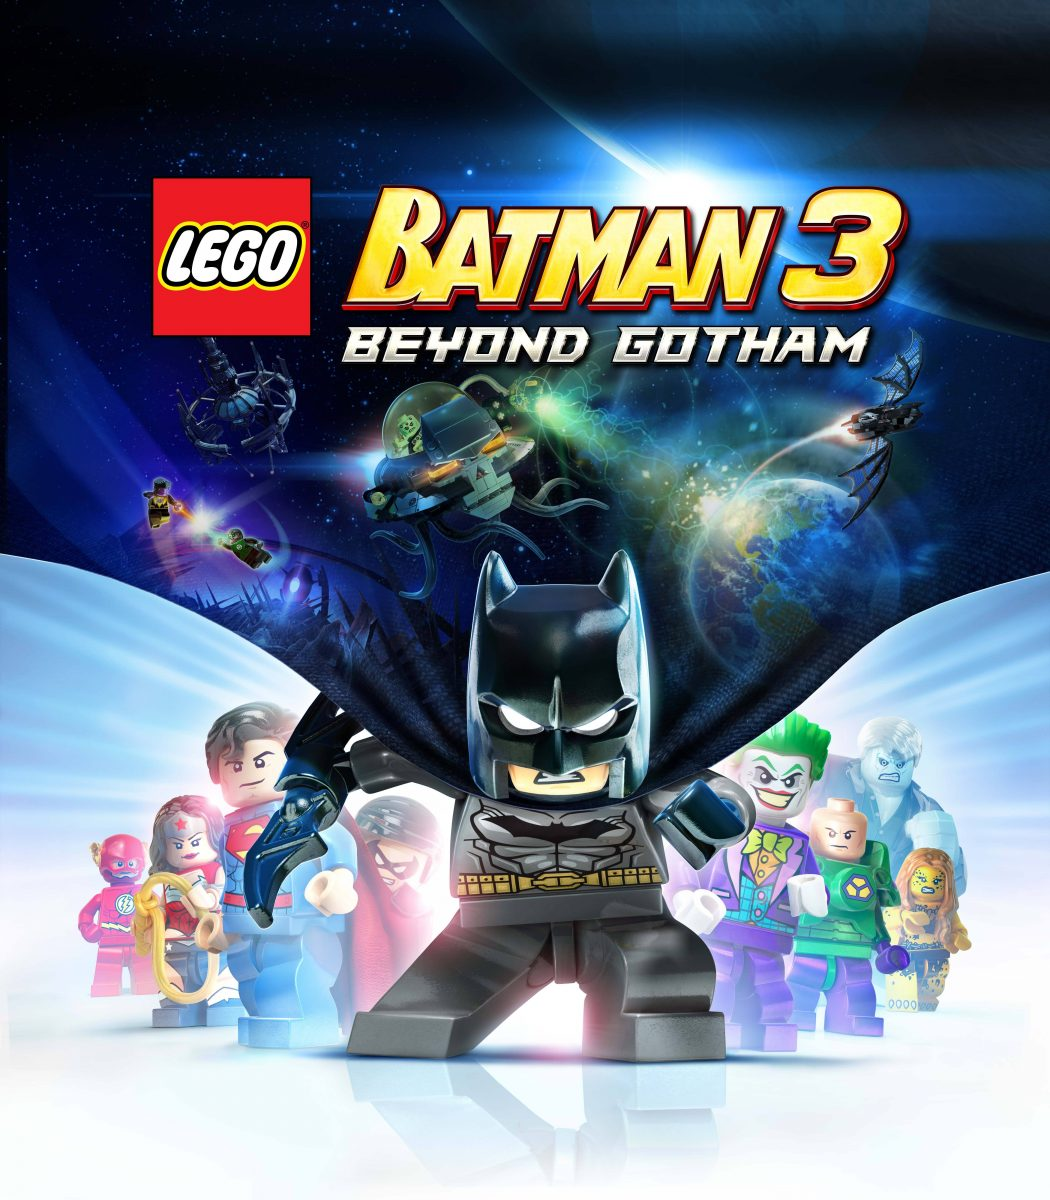 Lego-Batman-3-Box-Art Top 10 Best Kids Video Games